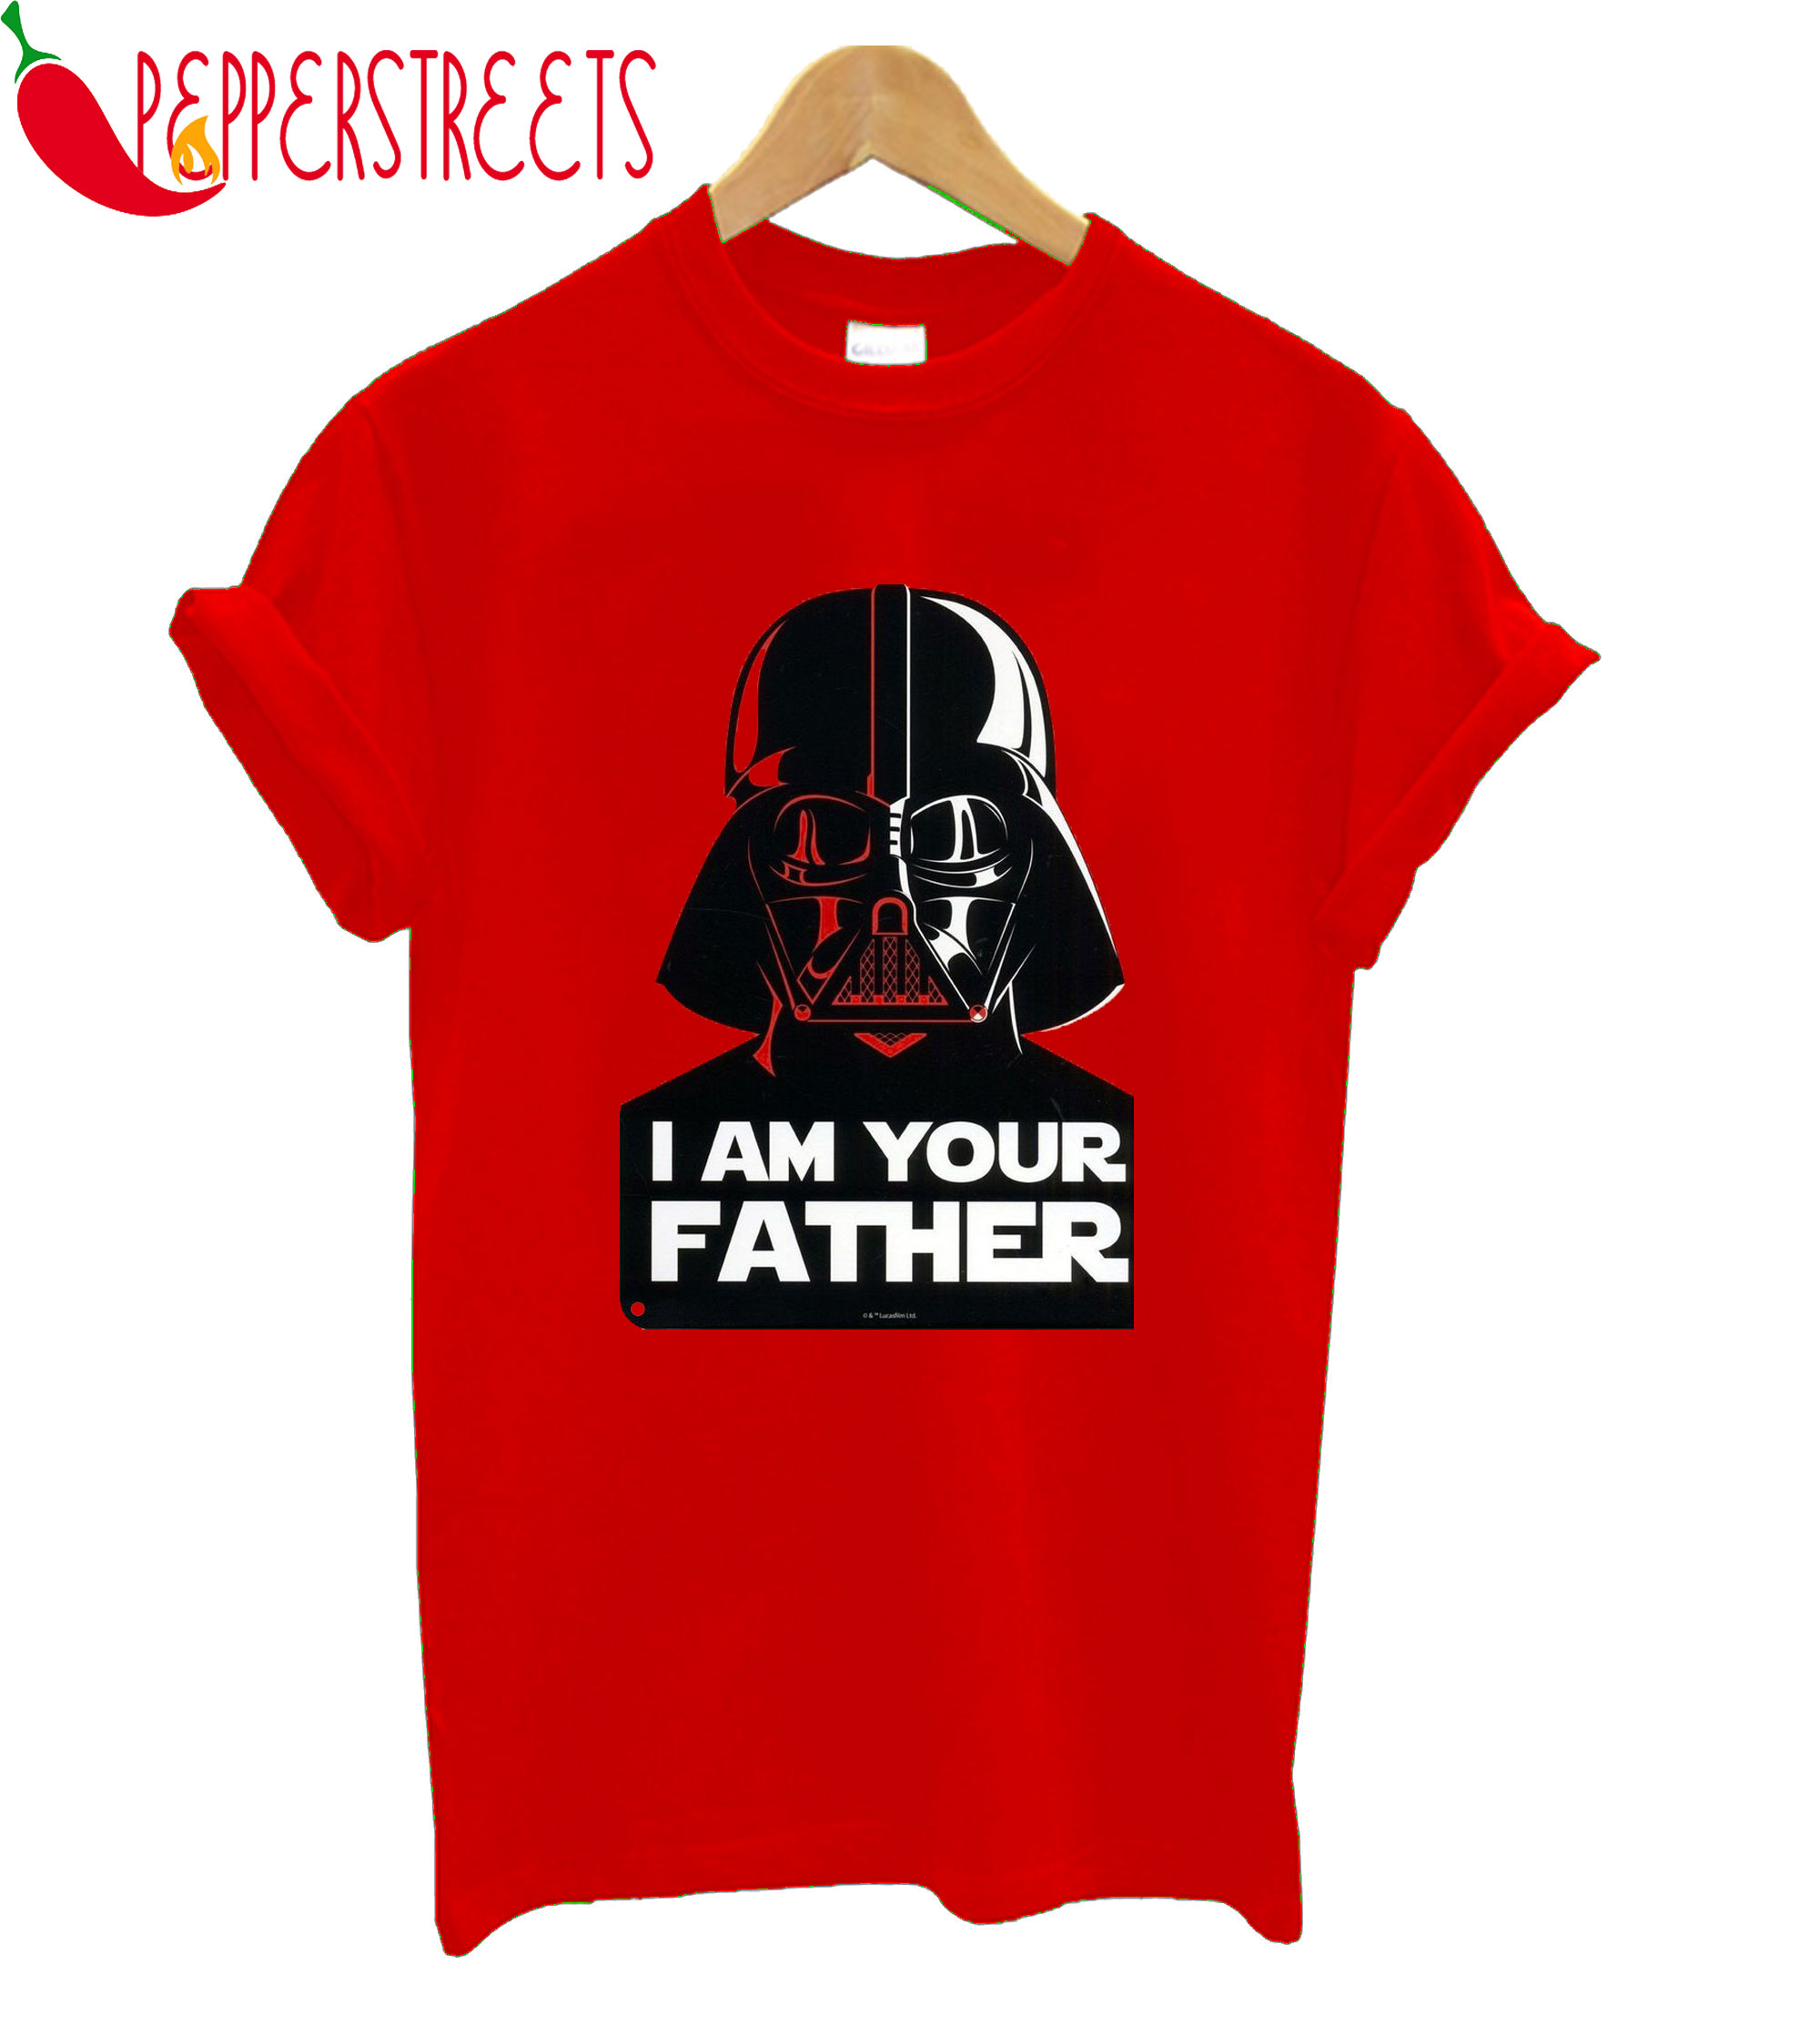 Your Father T-Shirt